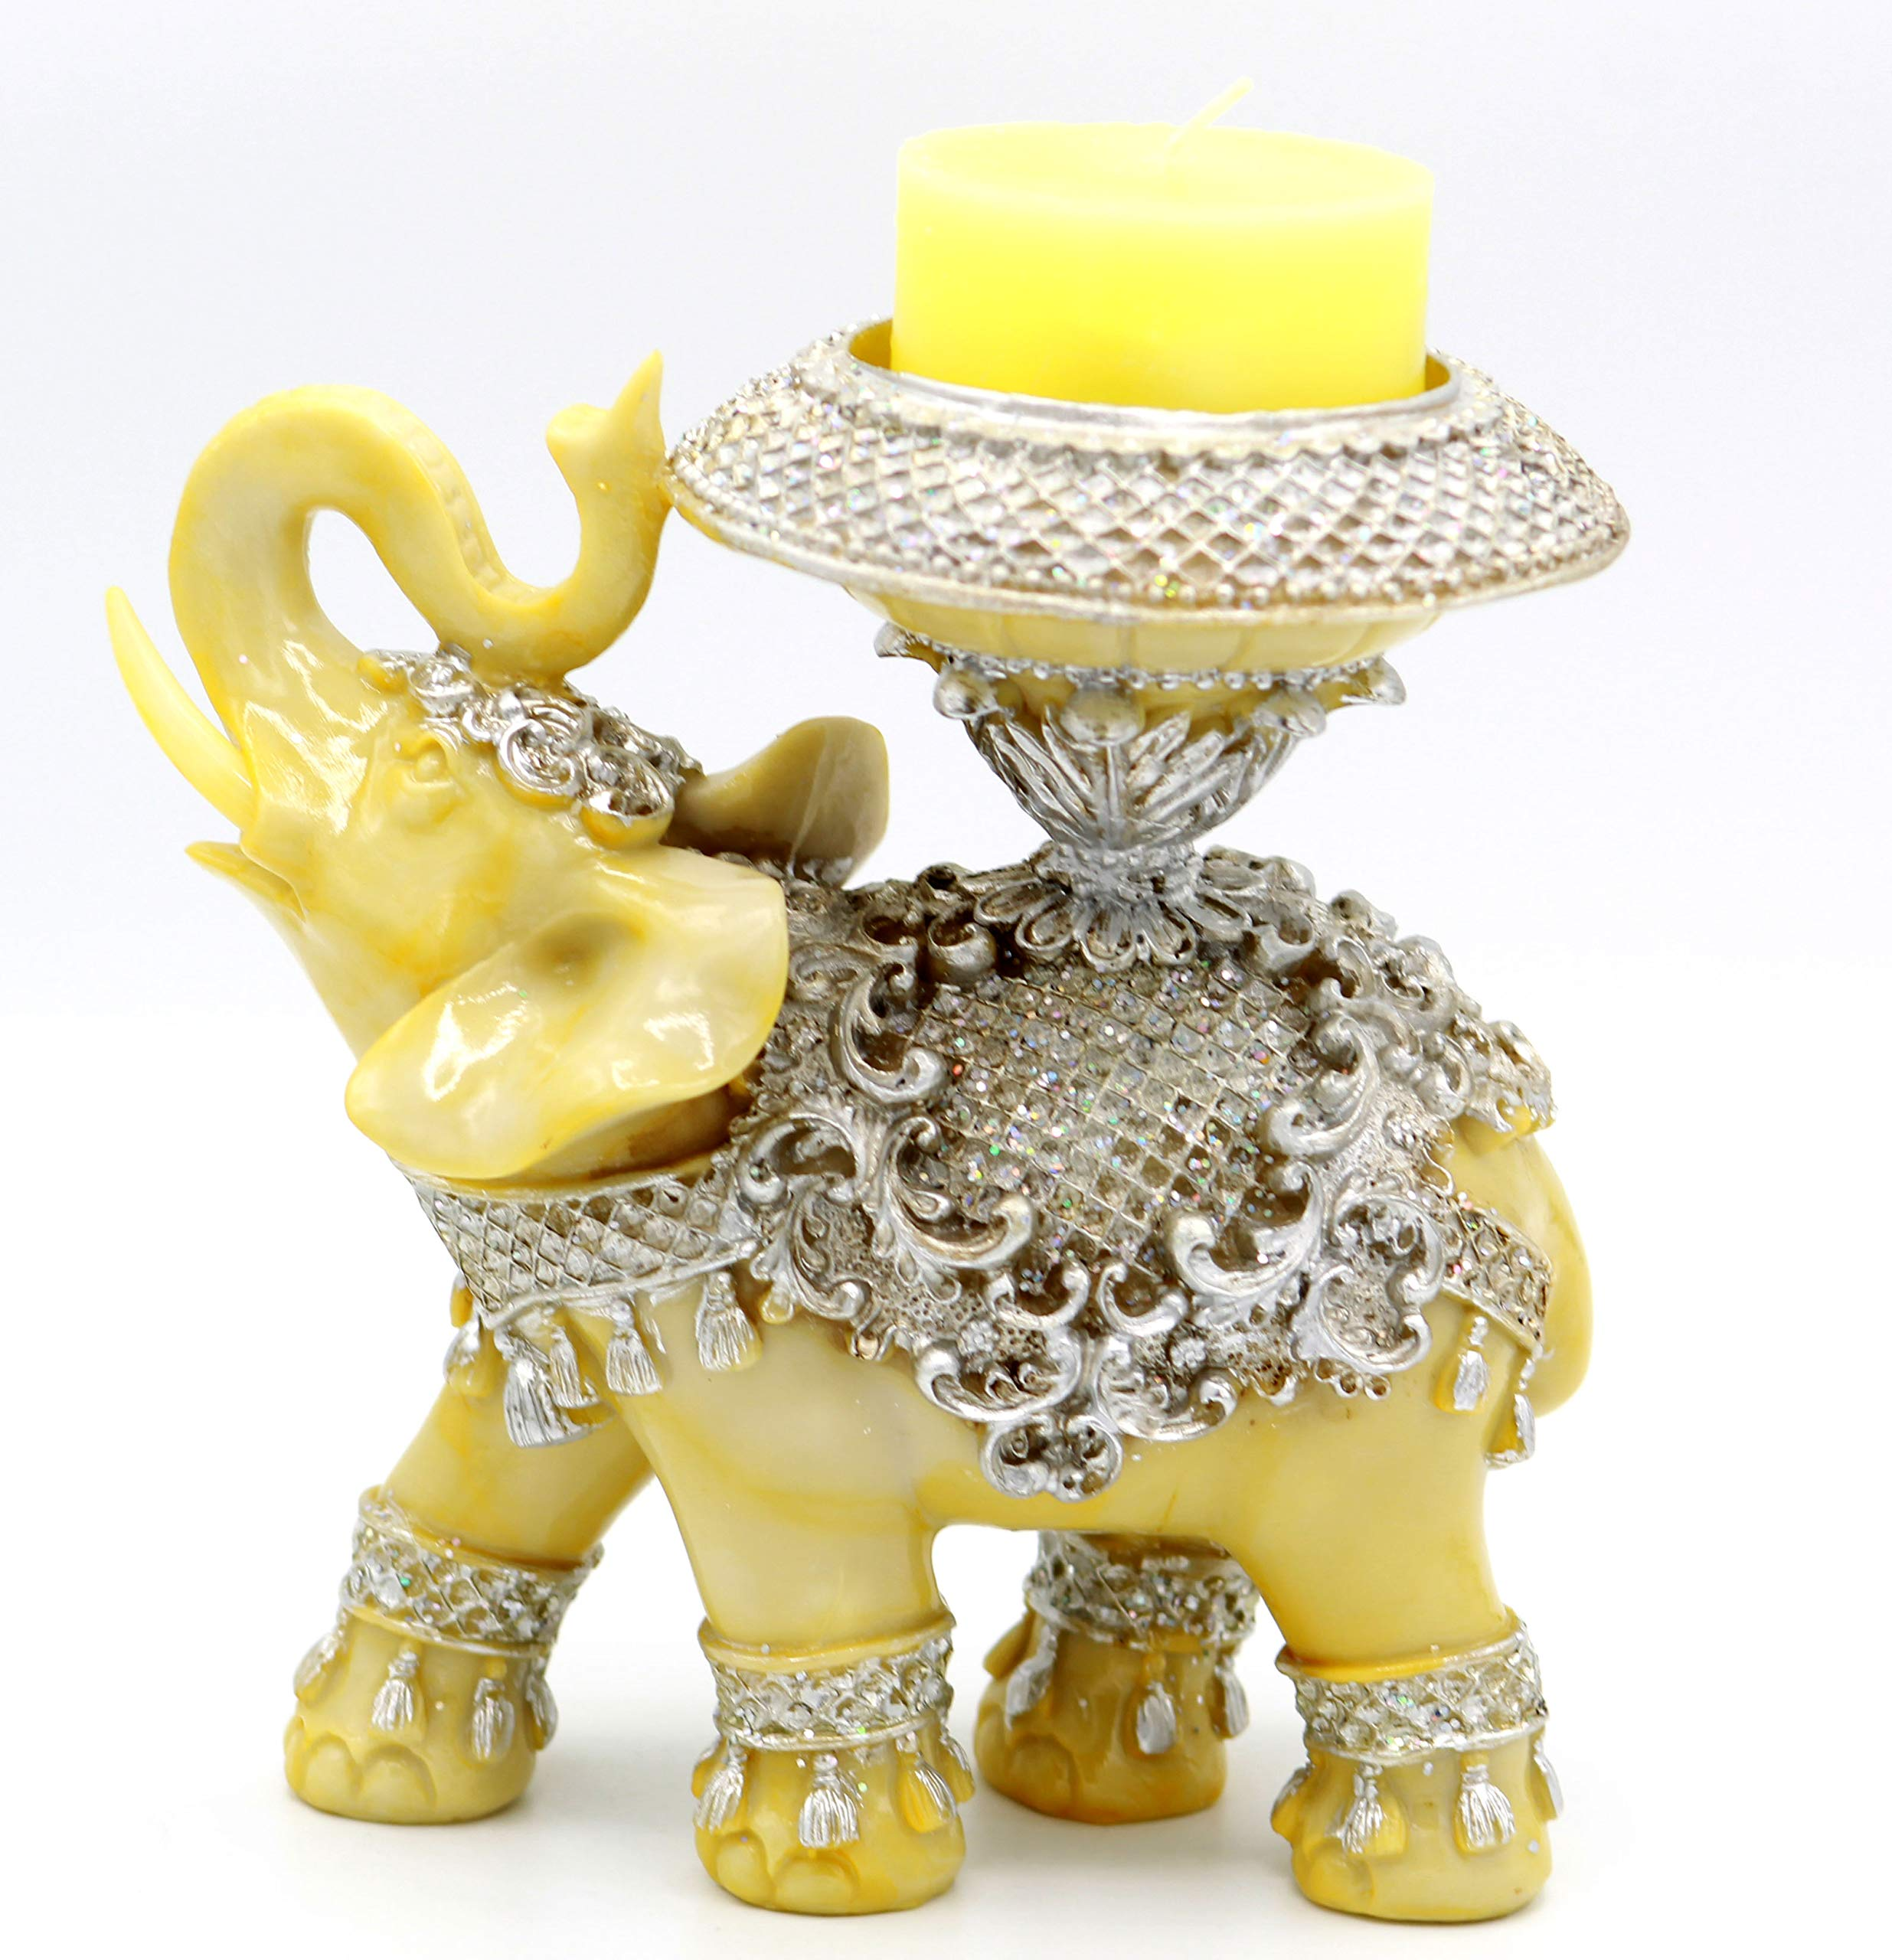 """Feng Shui 6"""" (H) Elephant Statue with Candle Holder Trunk Facing Upwards Collectible Wealth Lucky Elephant Figurine, Perfect for Home Office Decor Gift by Crystal Collection"""